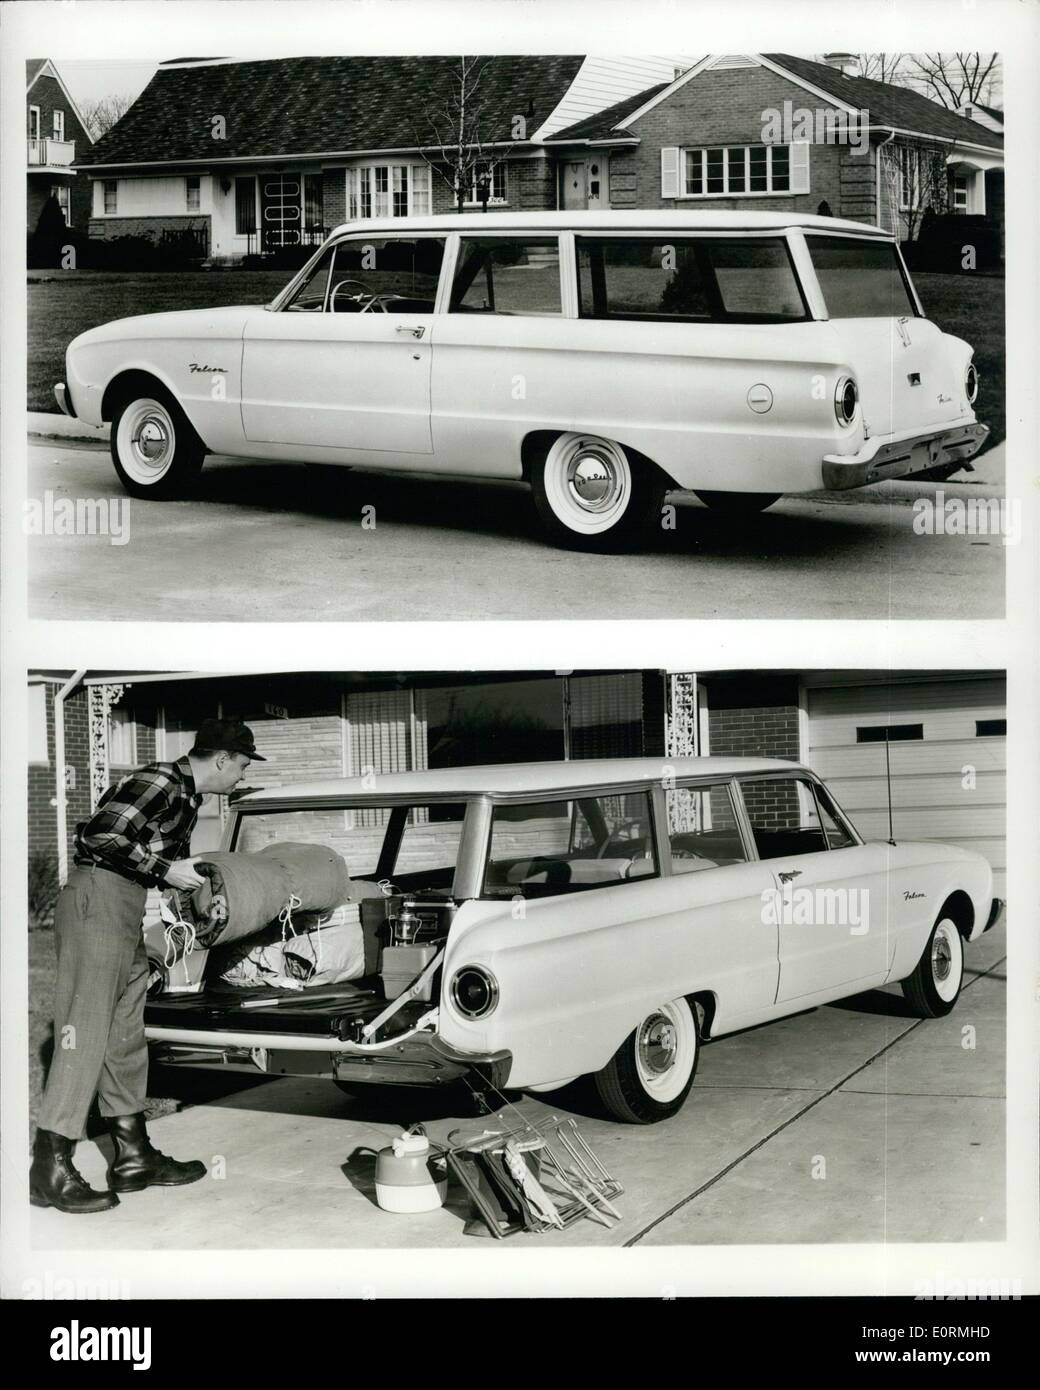 Jan 01, 1960 - Official product photos of a 1960 Ford Falcon